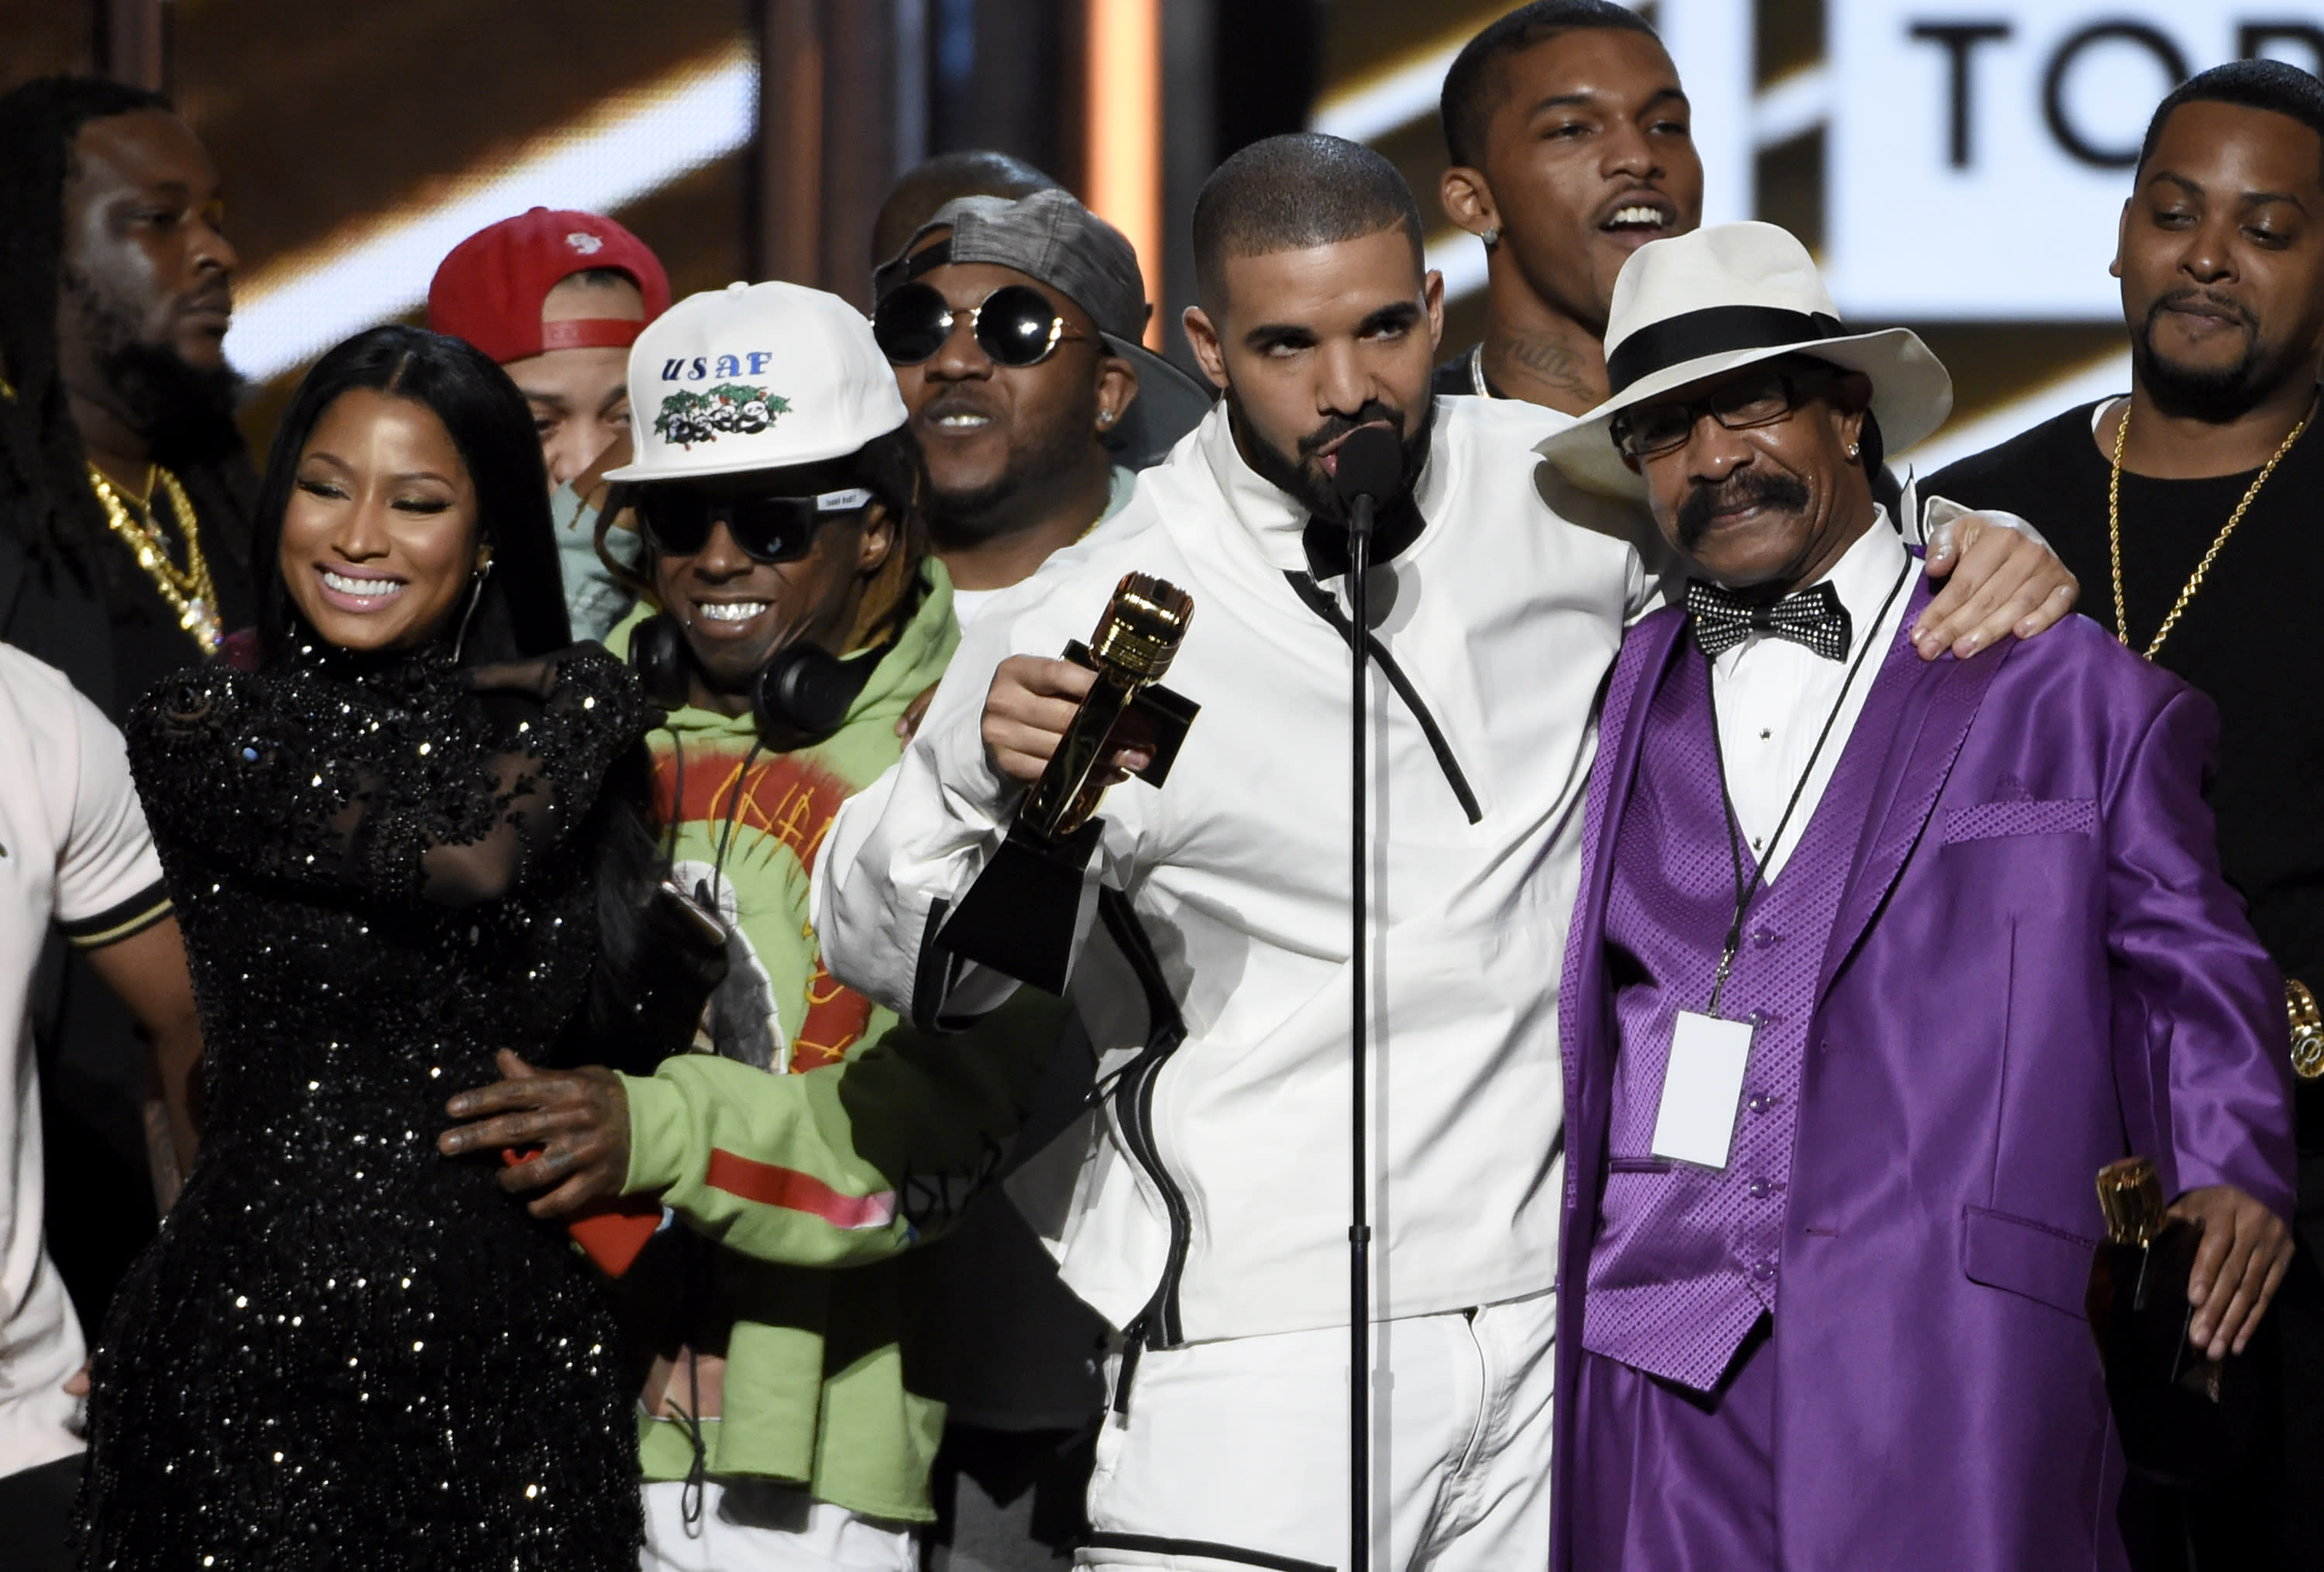 The nominees in the 2018 Billboard Music Awards have been announced and country singers are among the names in some of the most prominent categories